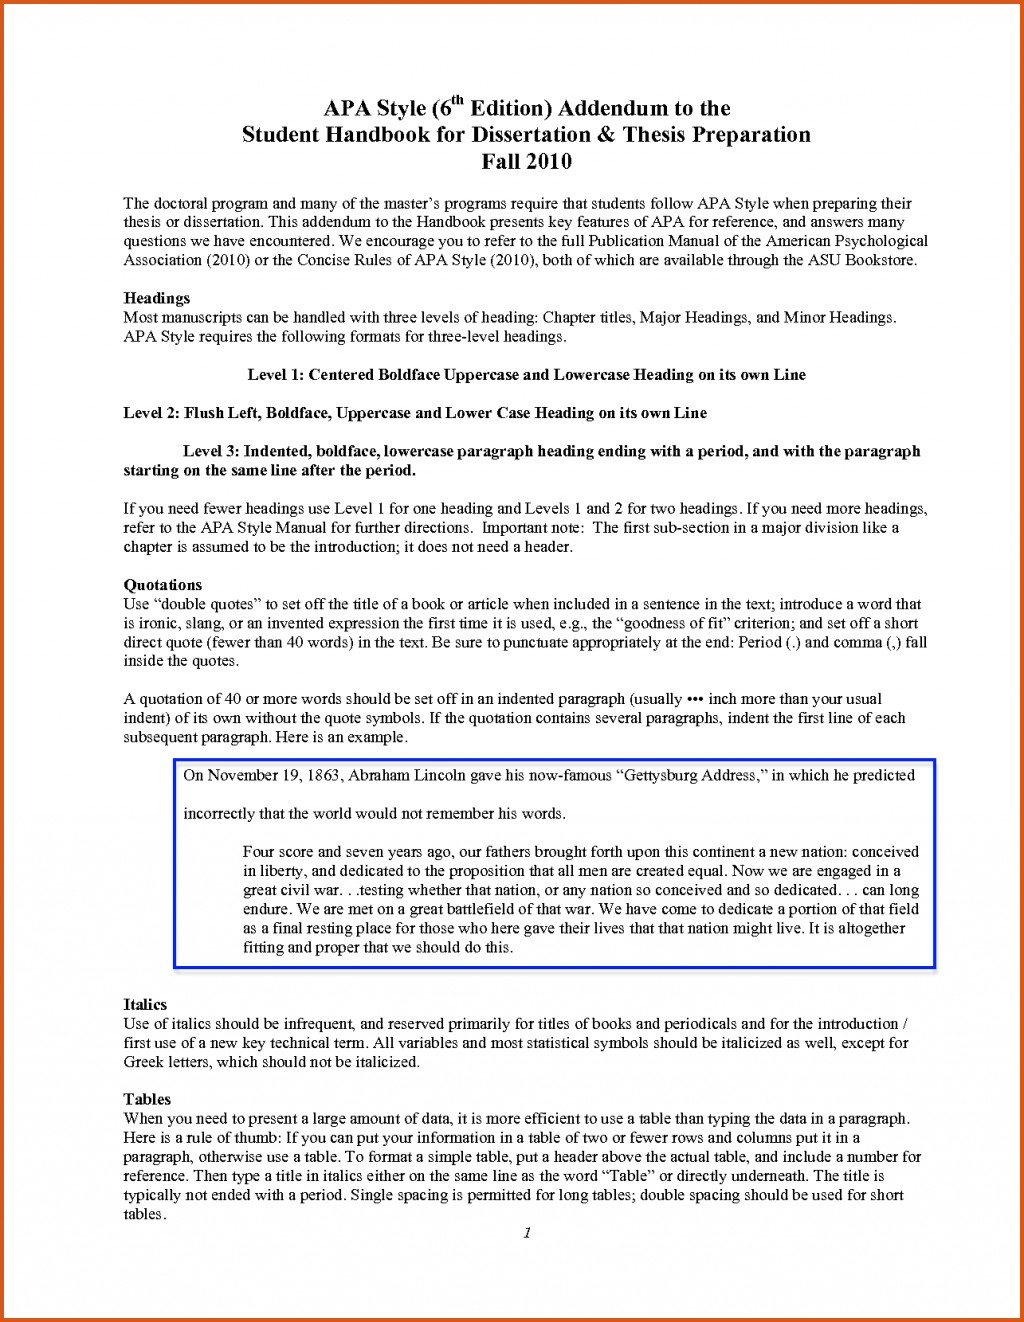 008 Research Paper Bunch Ideas Of Apa Style Guide 6th Edition Example Ive Ceptivmat Unique Format For Large